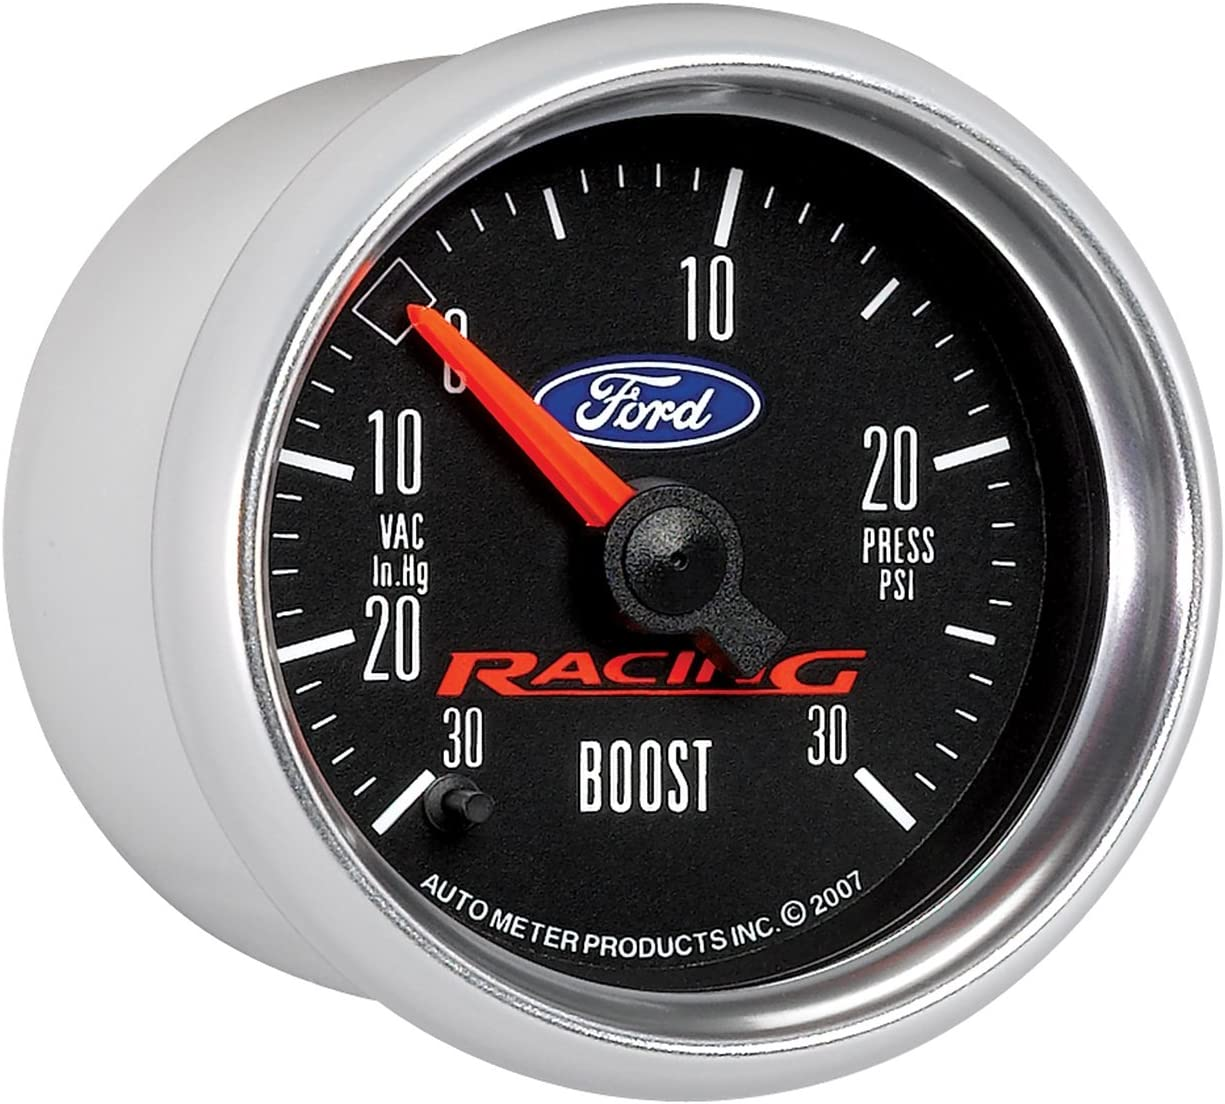 Auto Meter 880074 2-1//16 30 in Hg-30 PSI Electric Boost-Vacuum Gauge for Ford